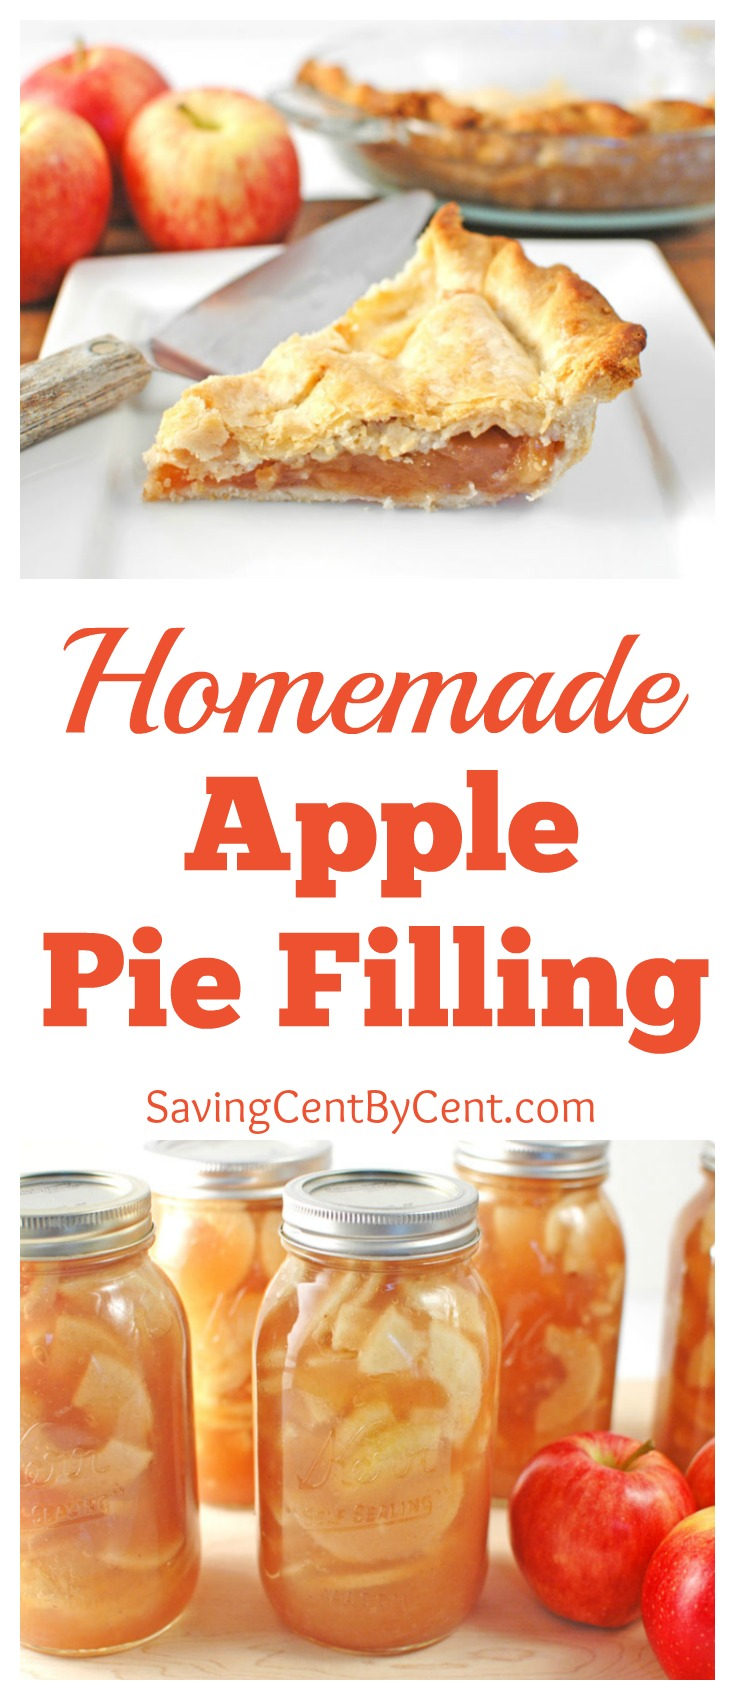 Homemade Apple Pie Filling Bottled